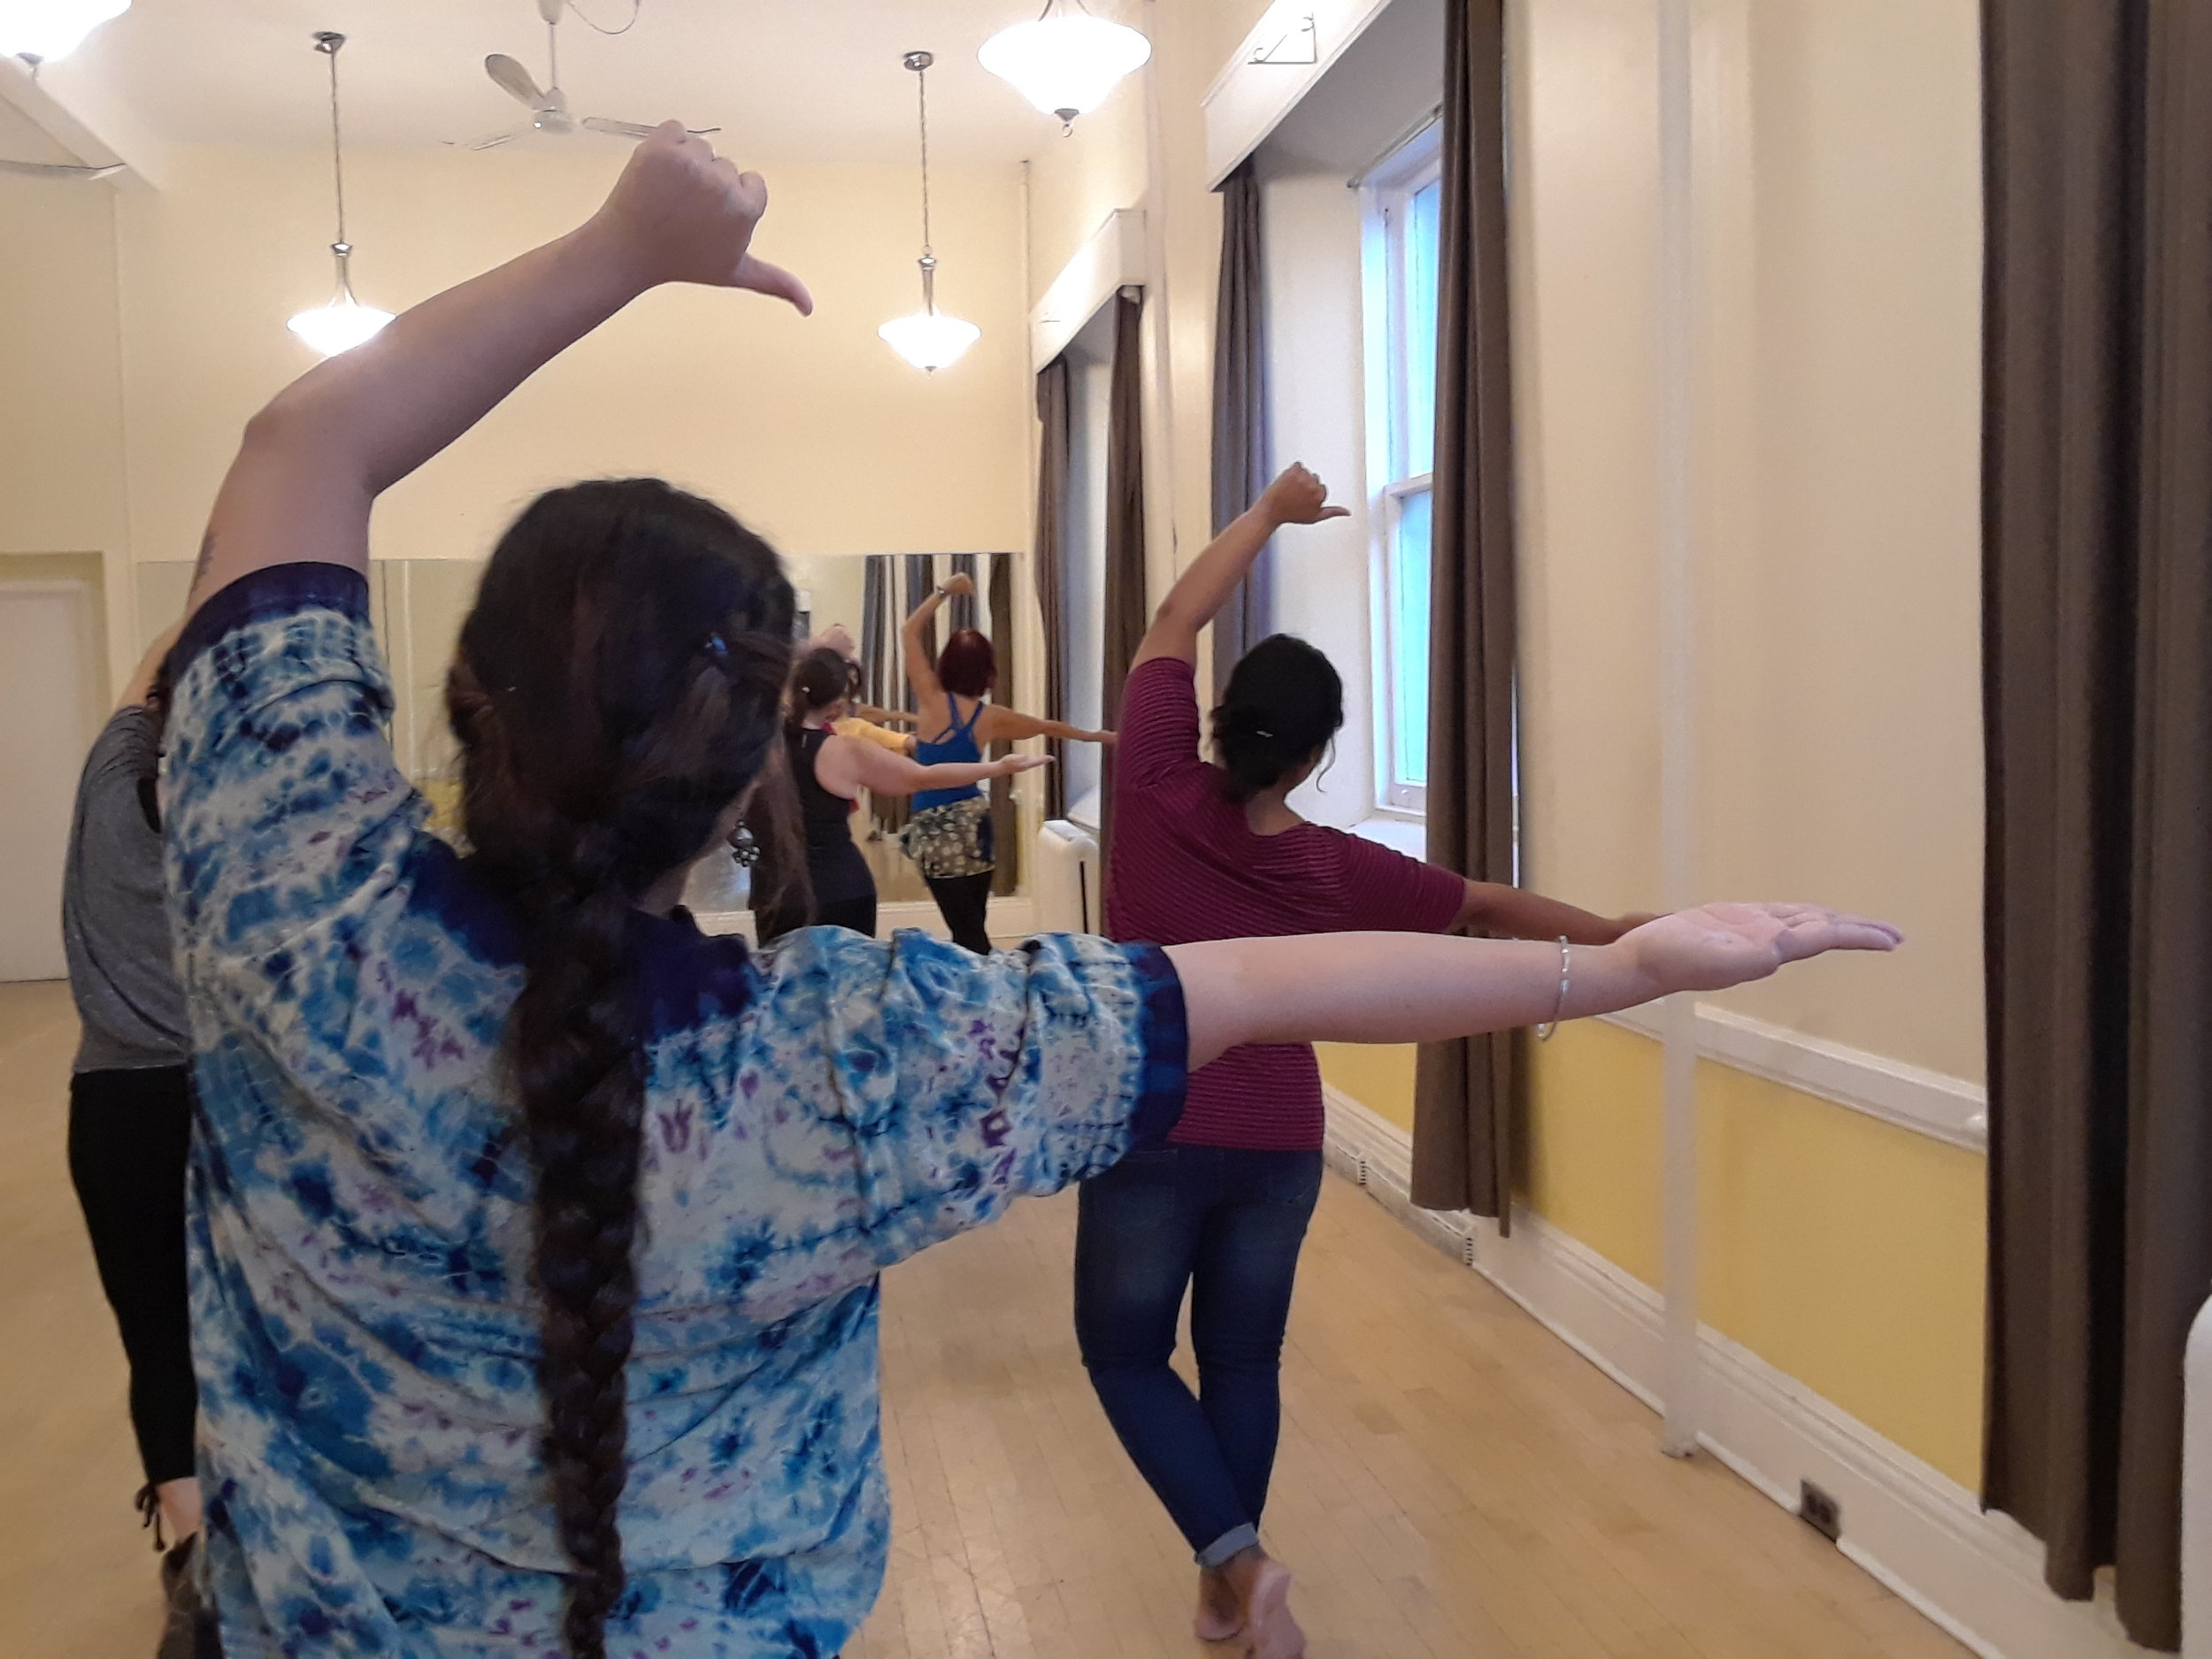 bollywood_and_classical_indian_dance_classes_in_toronto (4).jpg